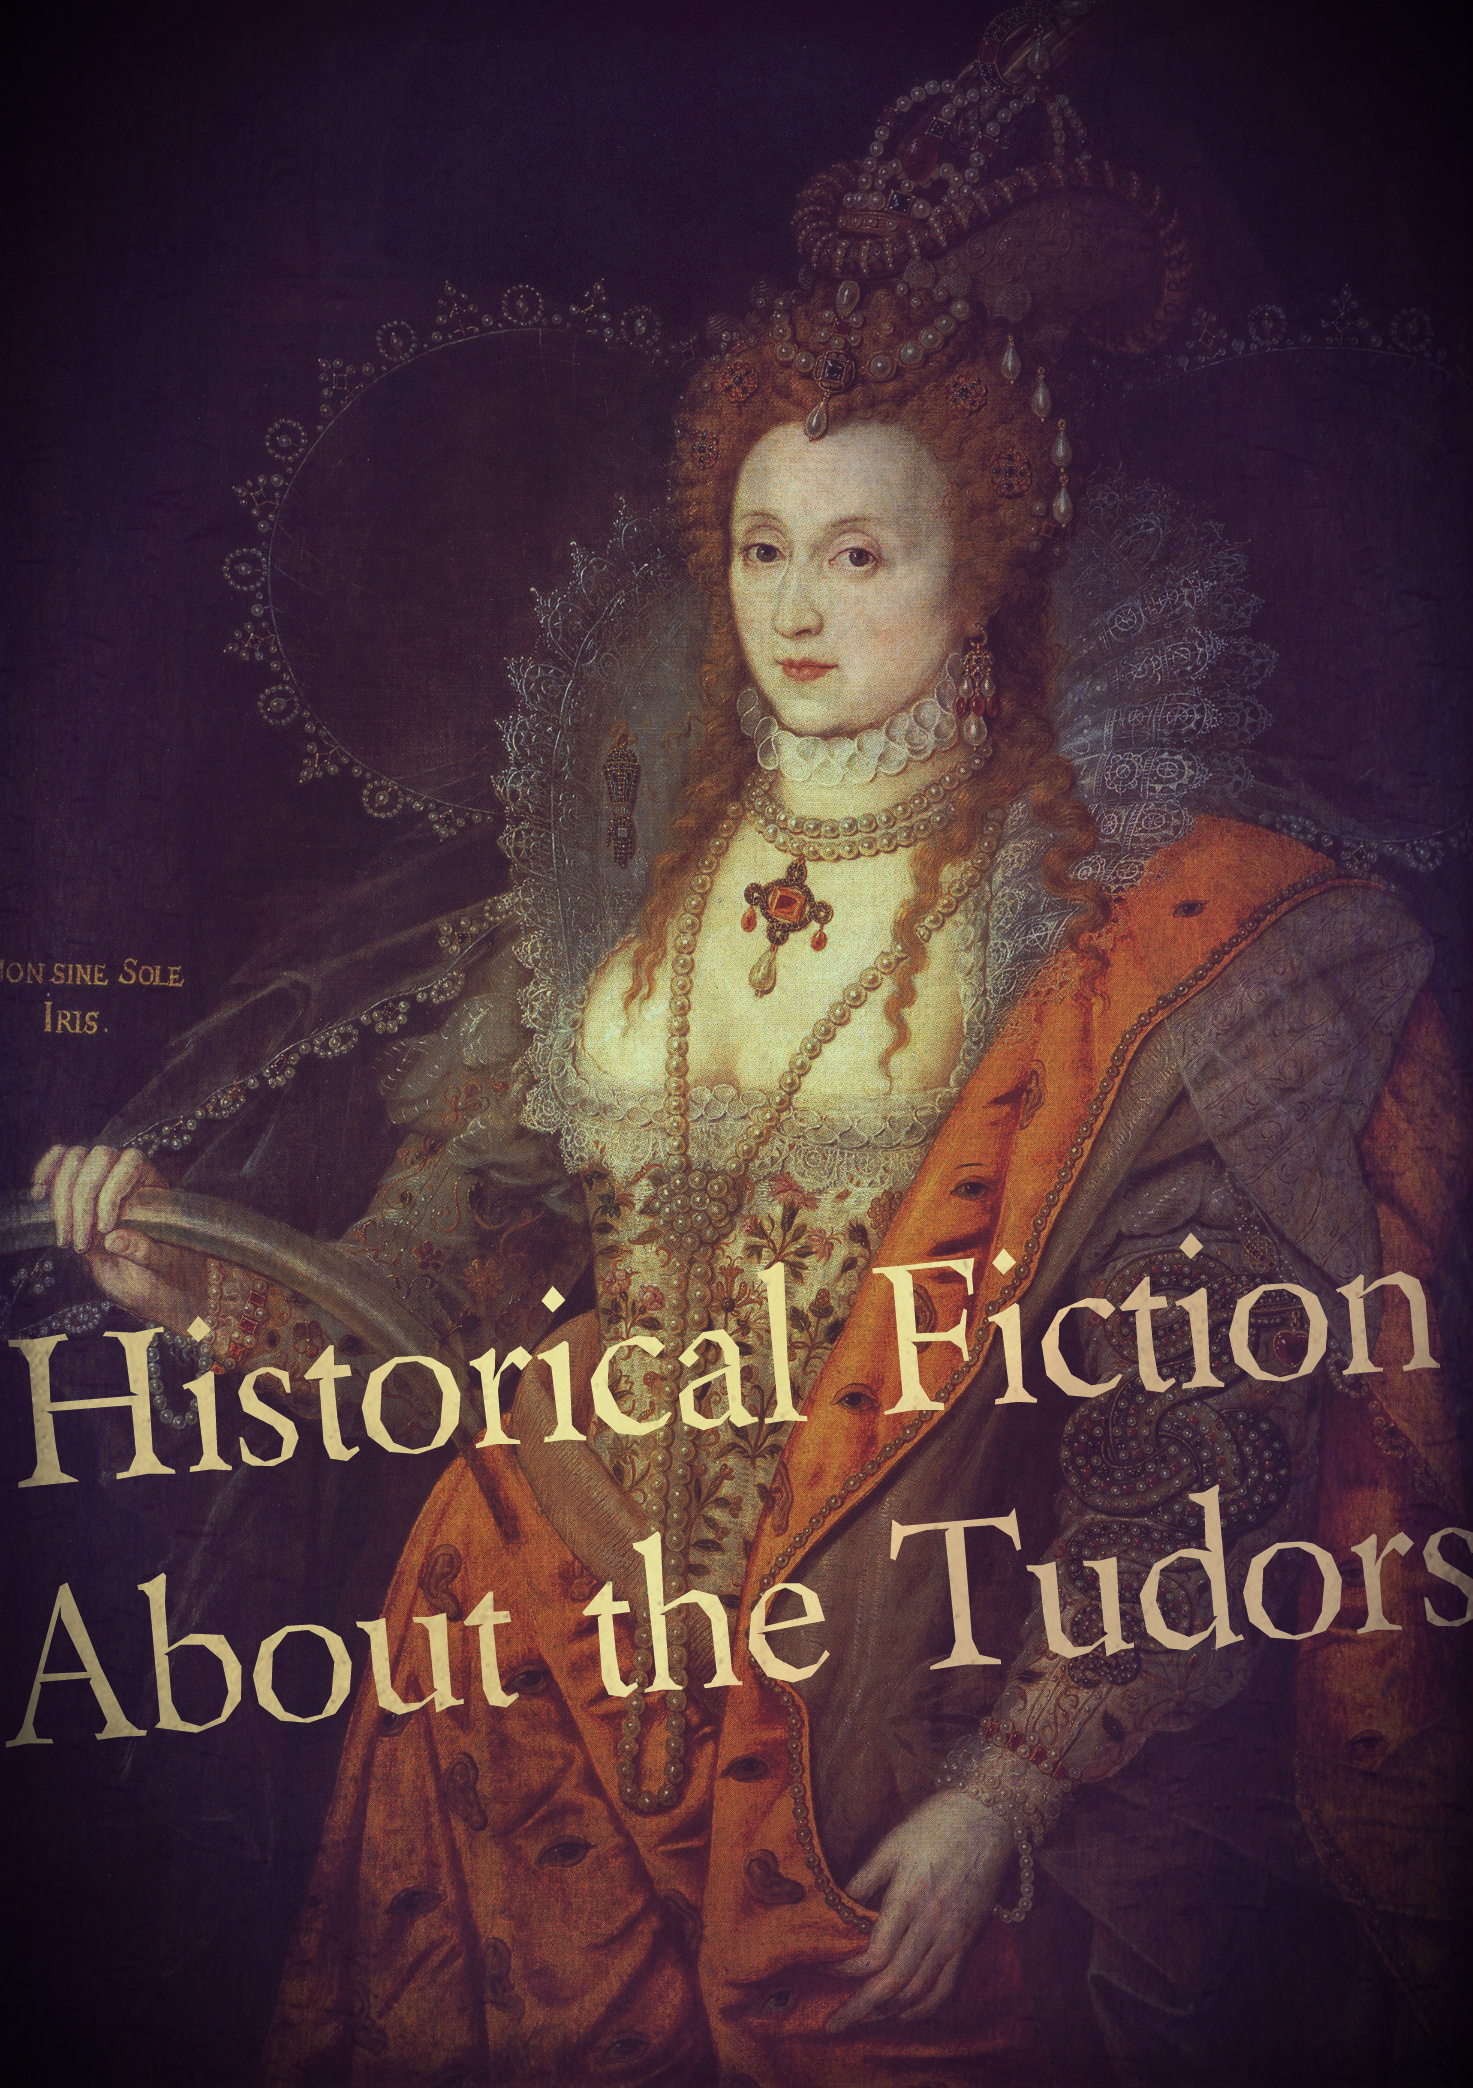 Historical Fiction Novels About the Tudors